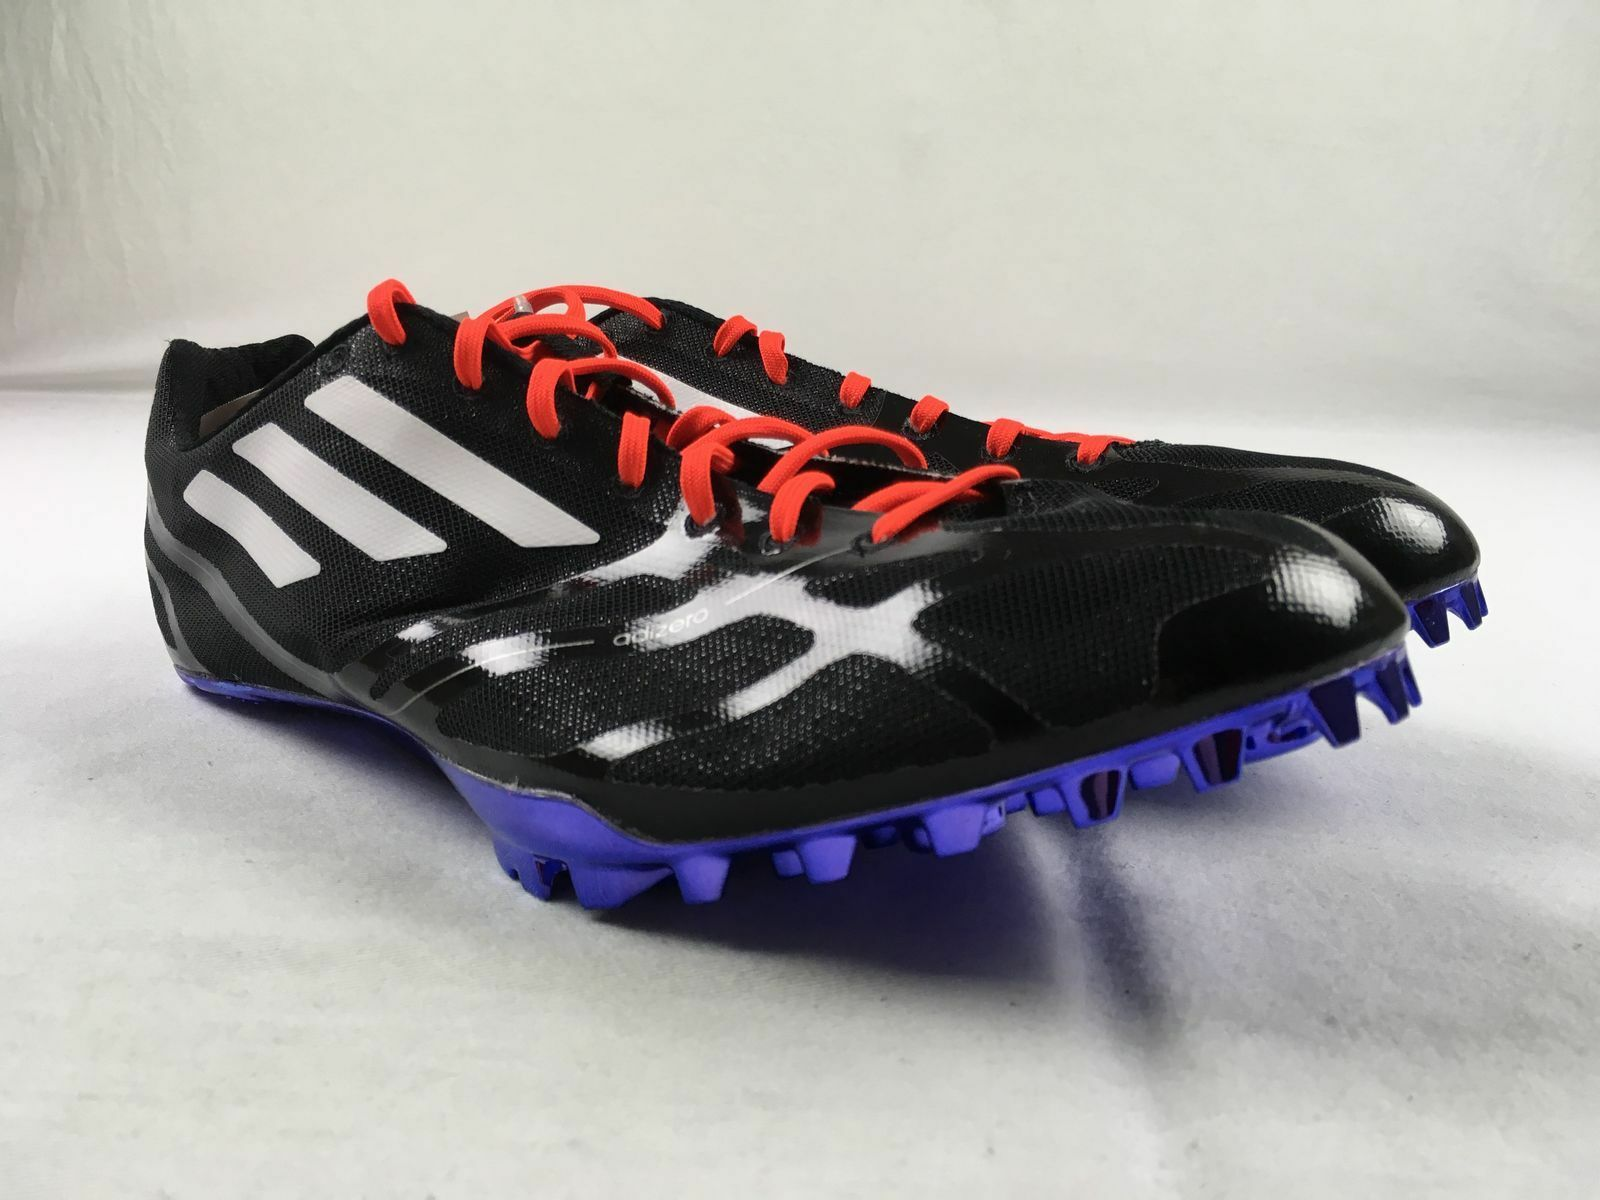 NEW adidas adizero Prime Fines - Black Cleats (Men's Multiple Sizes)